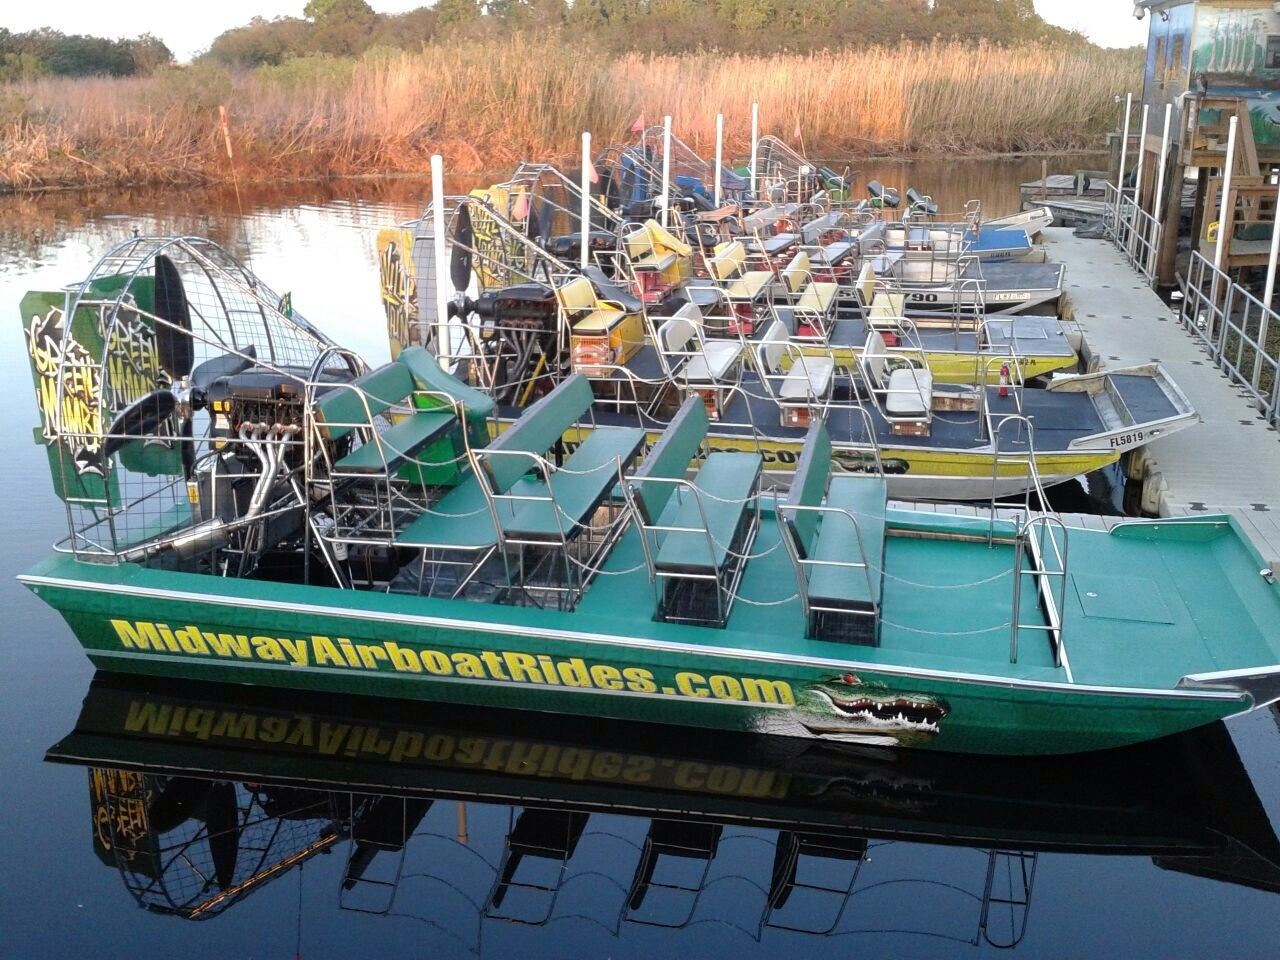 Airboat Rides at MIDWAY,airboat rides,airboat rides & tours,airboat rides near orlando,airboating,all ages,central florida everglades airboat tour,good for groups,hold a baby alligator,wildlife & river ride